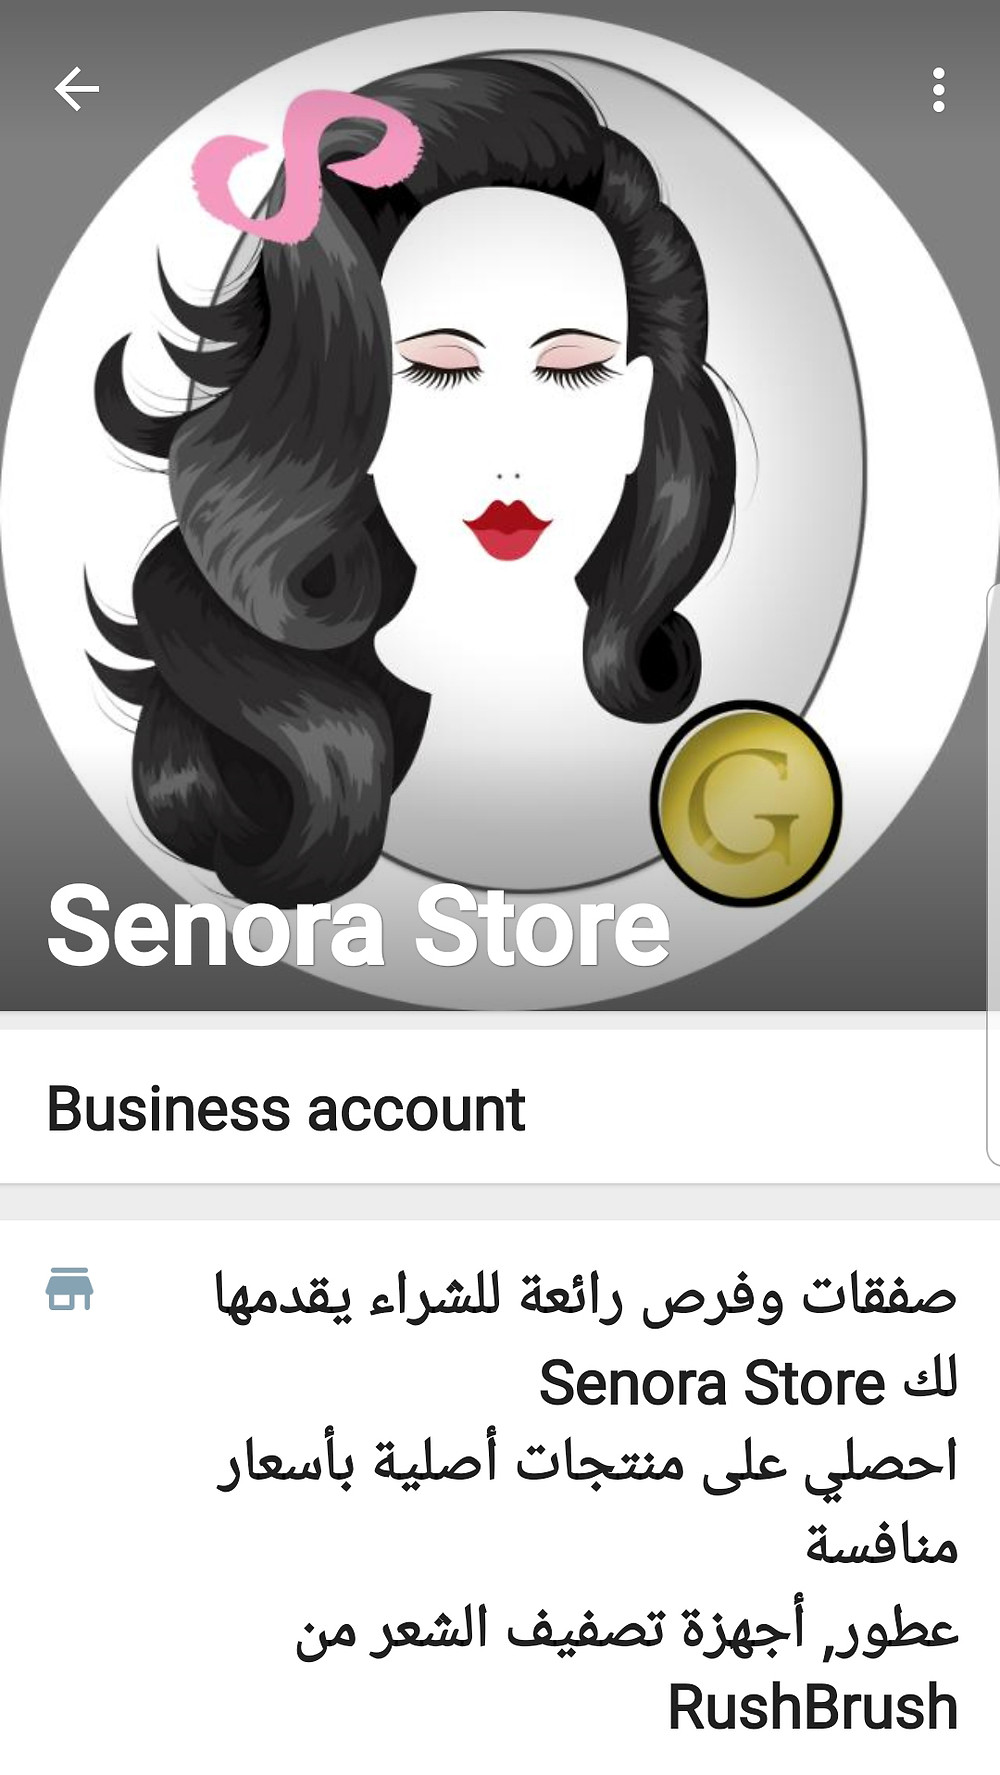 senora store whats app business profile